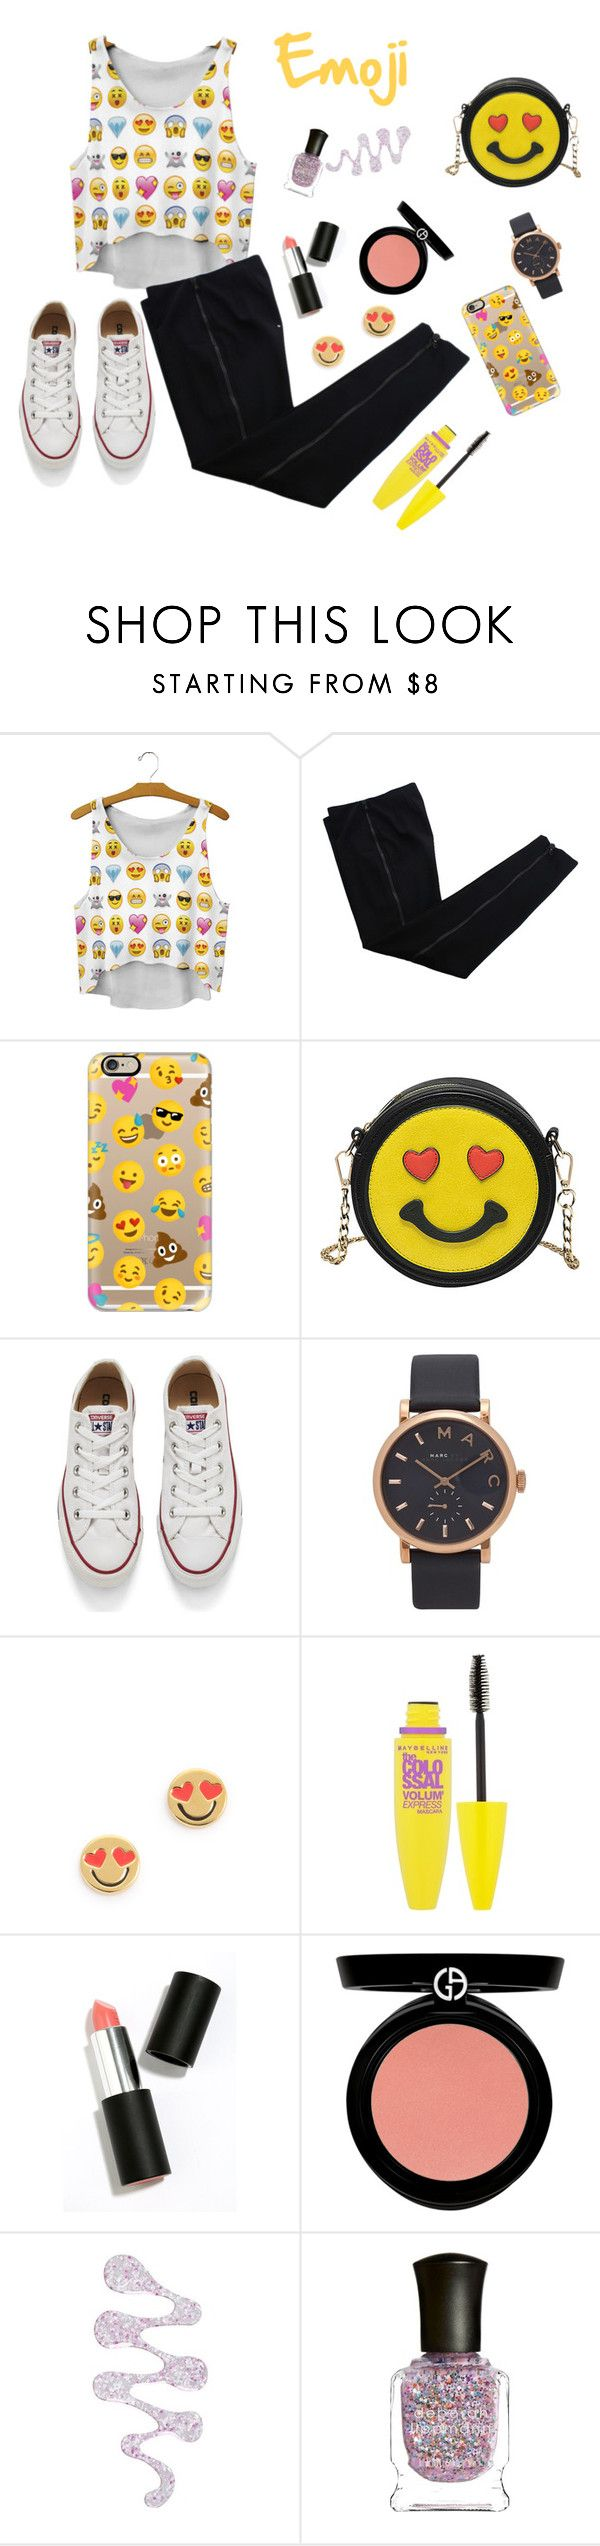 """""""Emoji"""" by victoriafiocco ❤ liked on Polyvore featuring COSTUME NATIONAL, Casetify, Melie Bianco, Converse, Marc Jacobs, Kate Spade, Maybelline, Sigma Beauty, Armani Beauty and Nails Inc."""